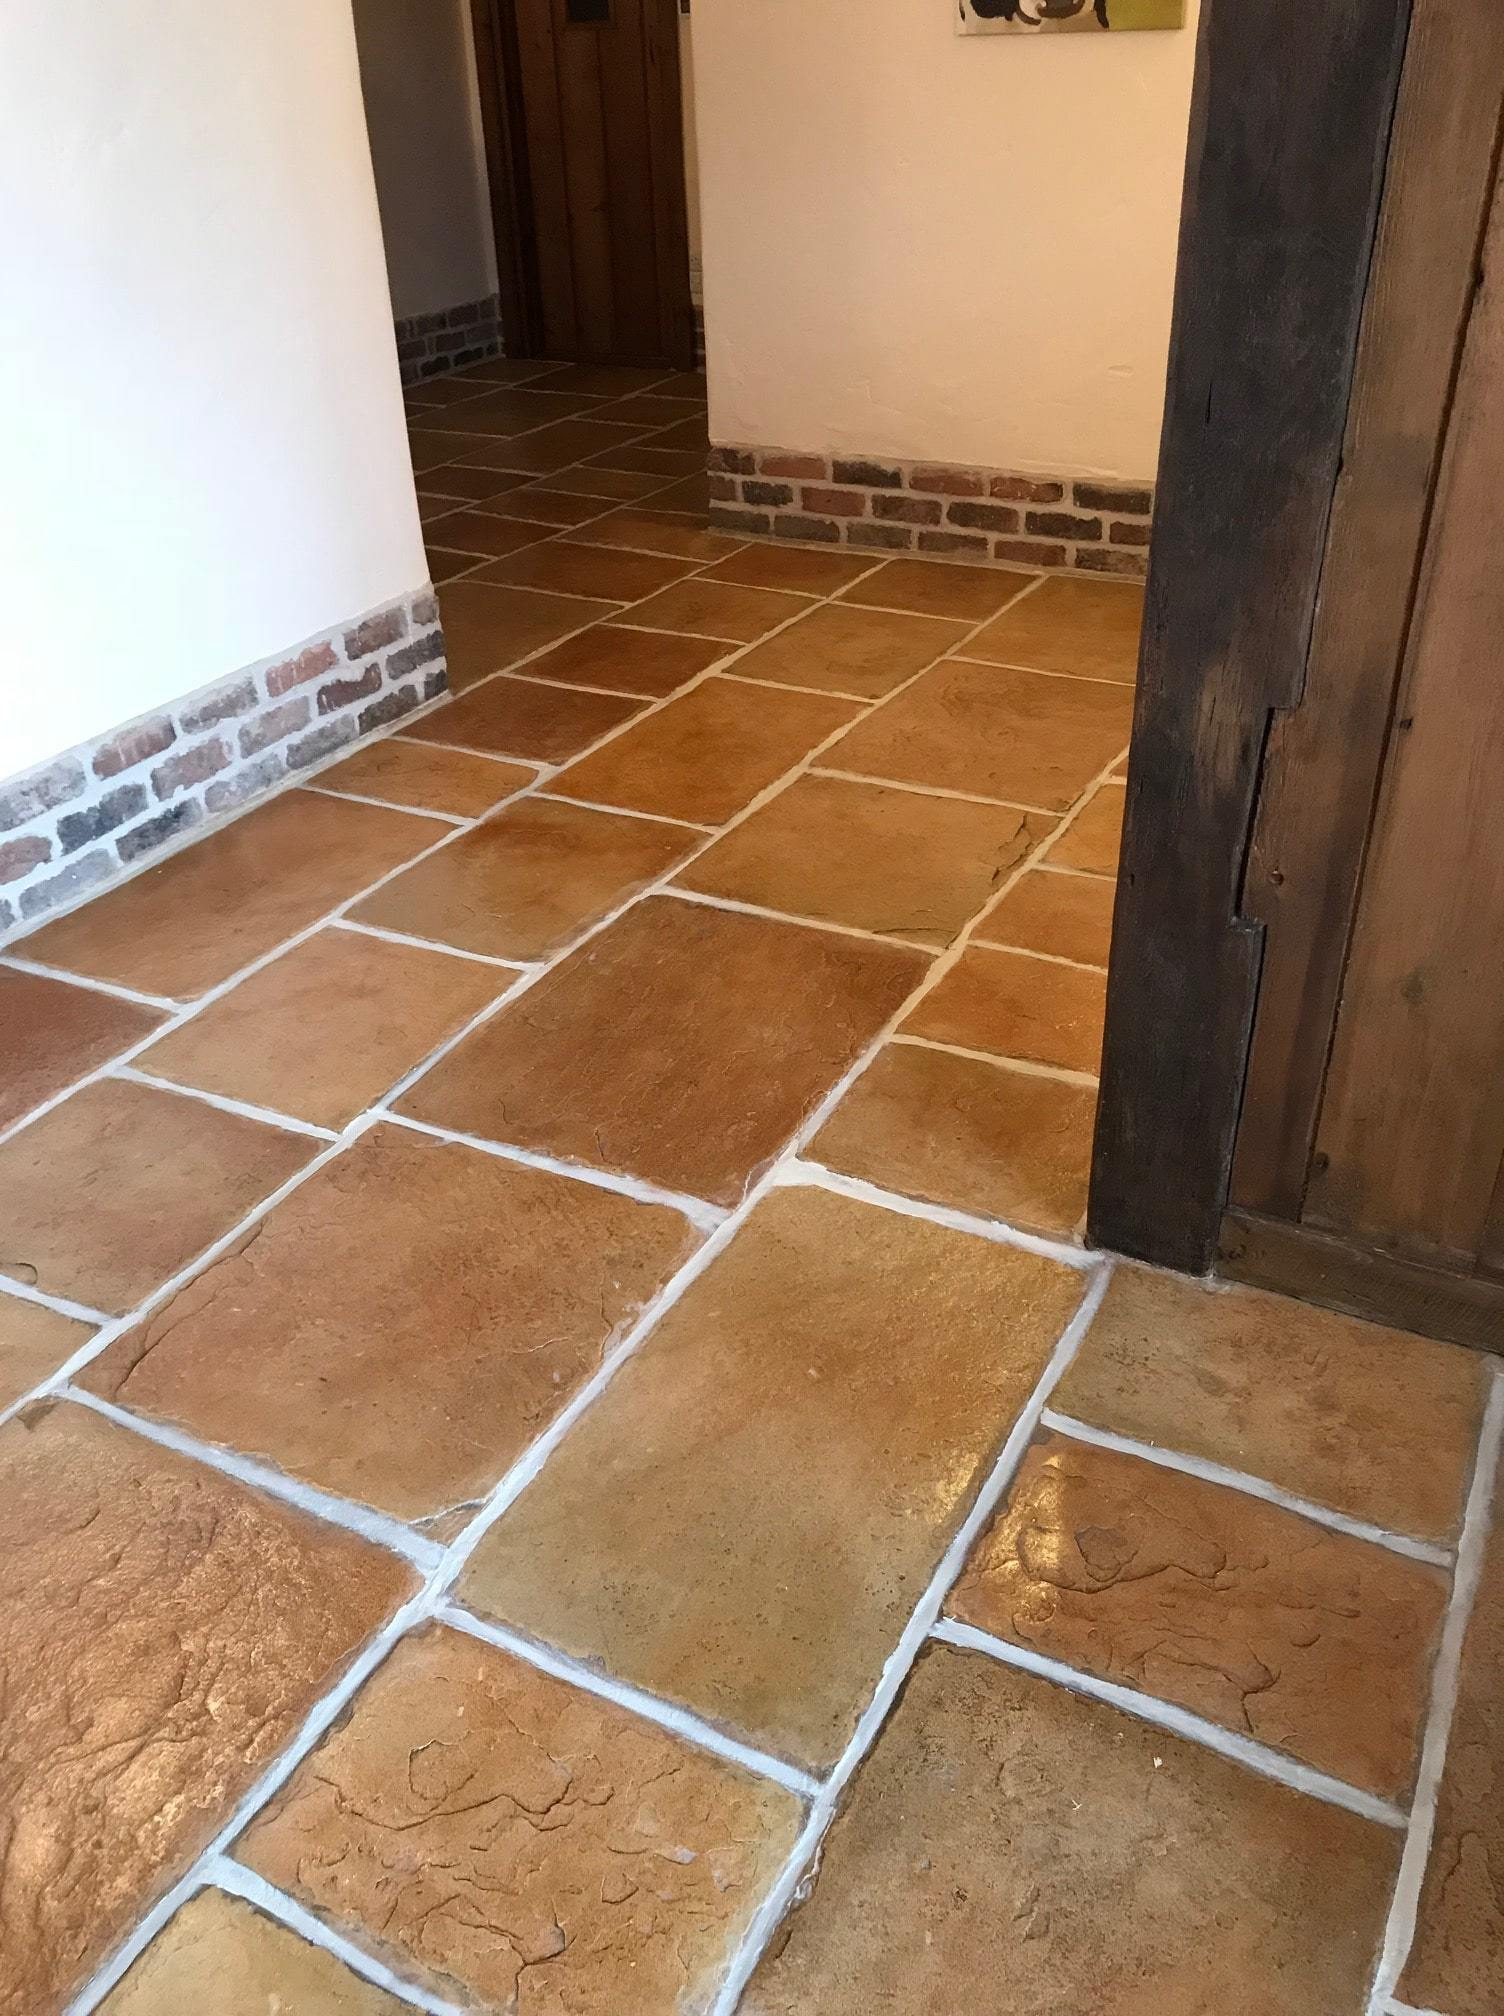 Sandstone Effect Concrete After Cleaning